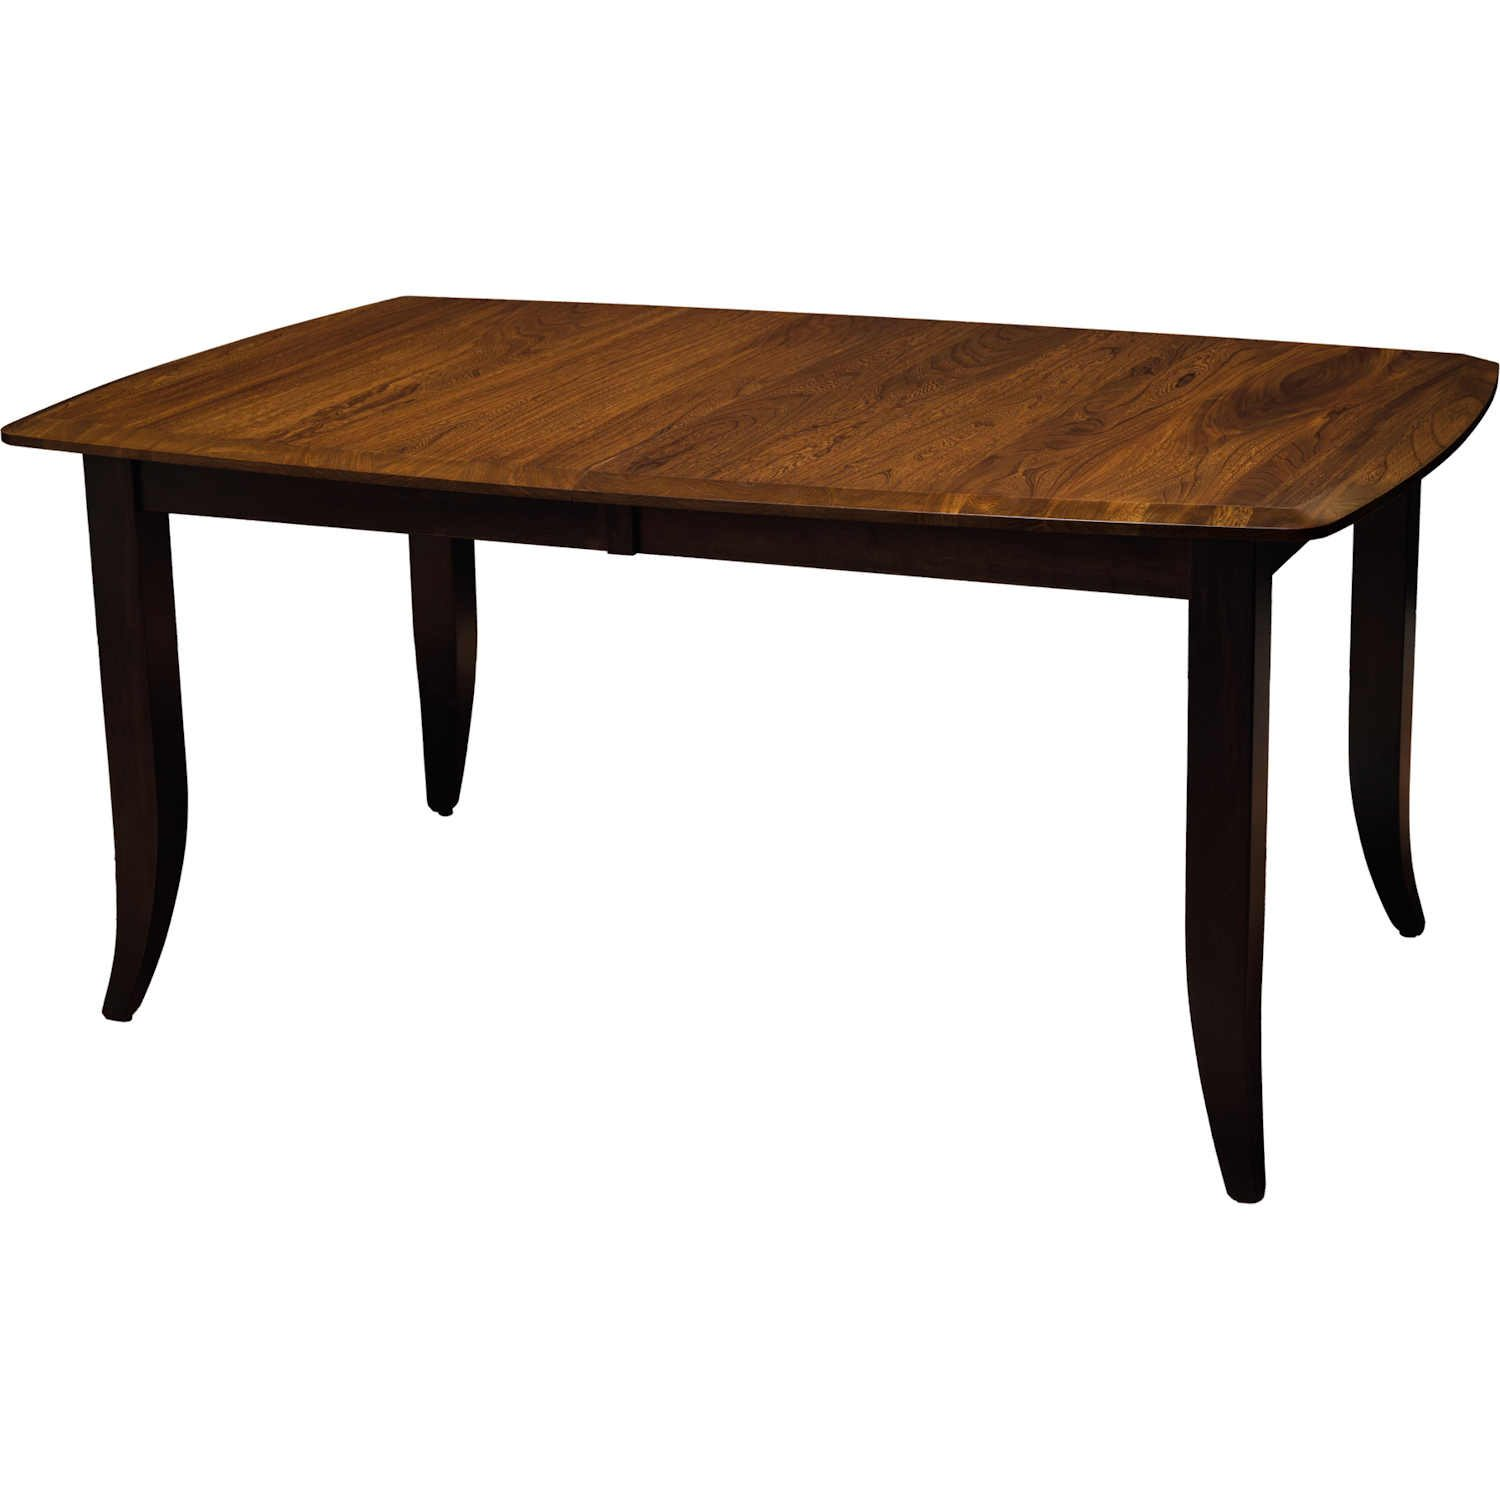 Christy Dining Collection 2014 Christy Extension Dining Table